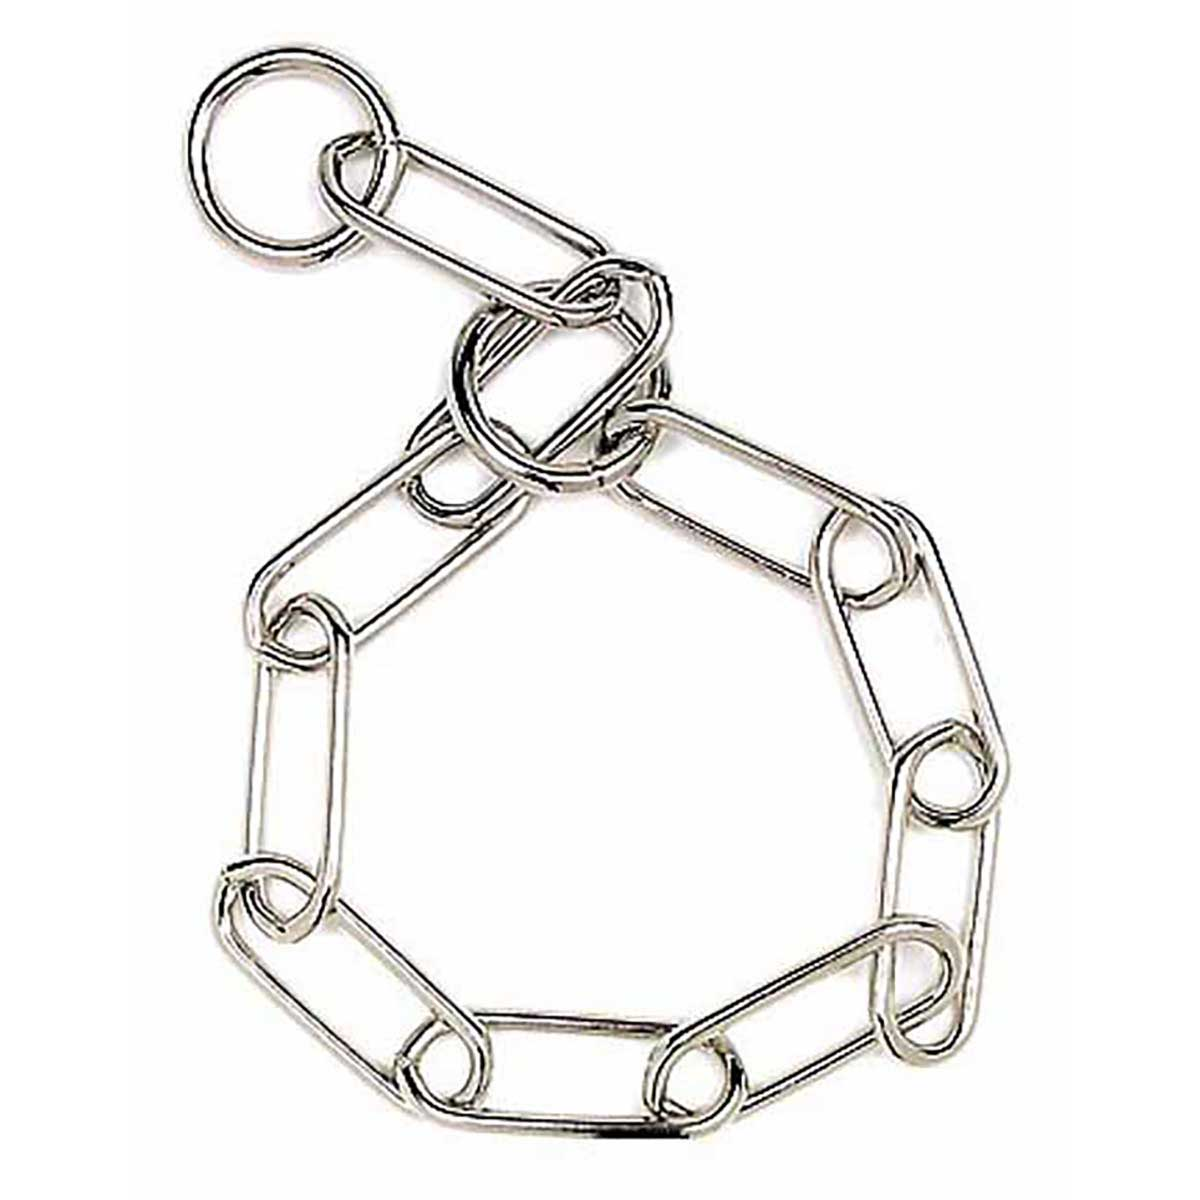 Herm Sprenger Fur Saver Choke Chains 3 0mm